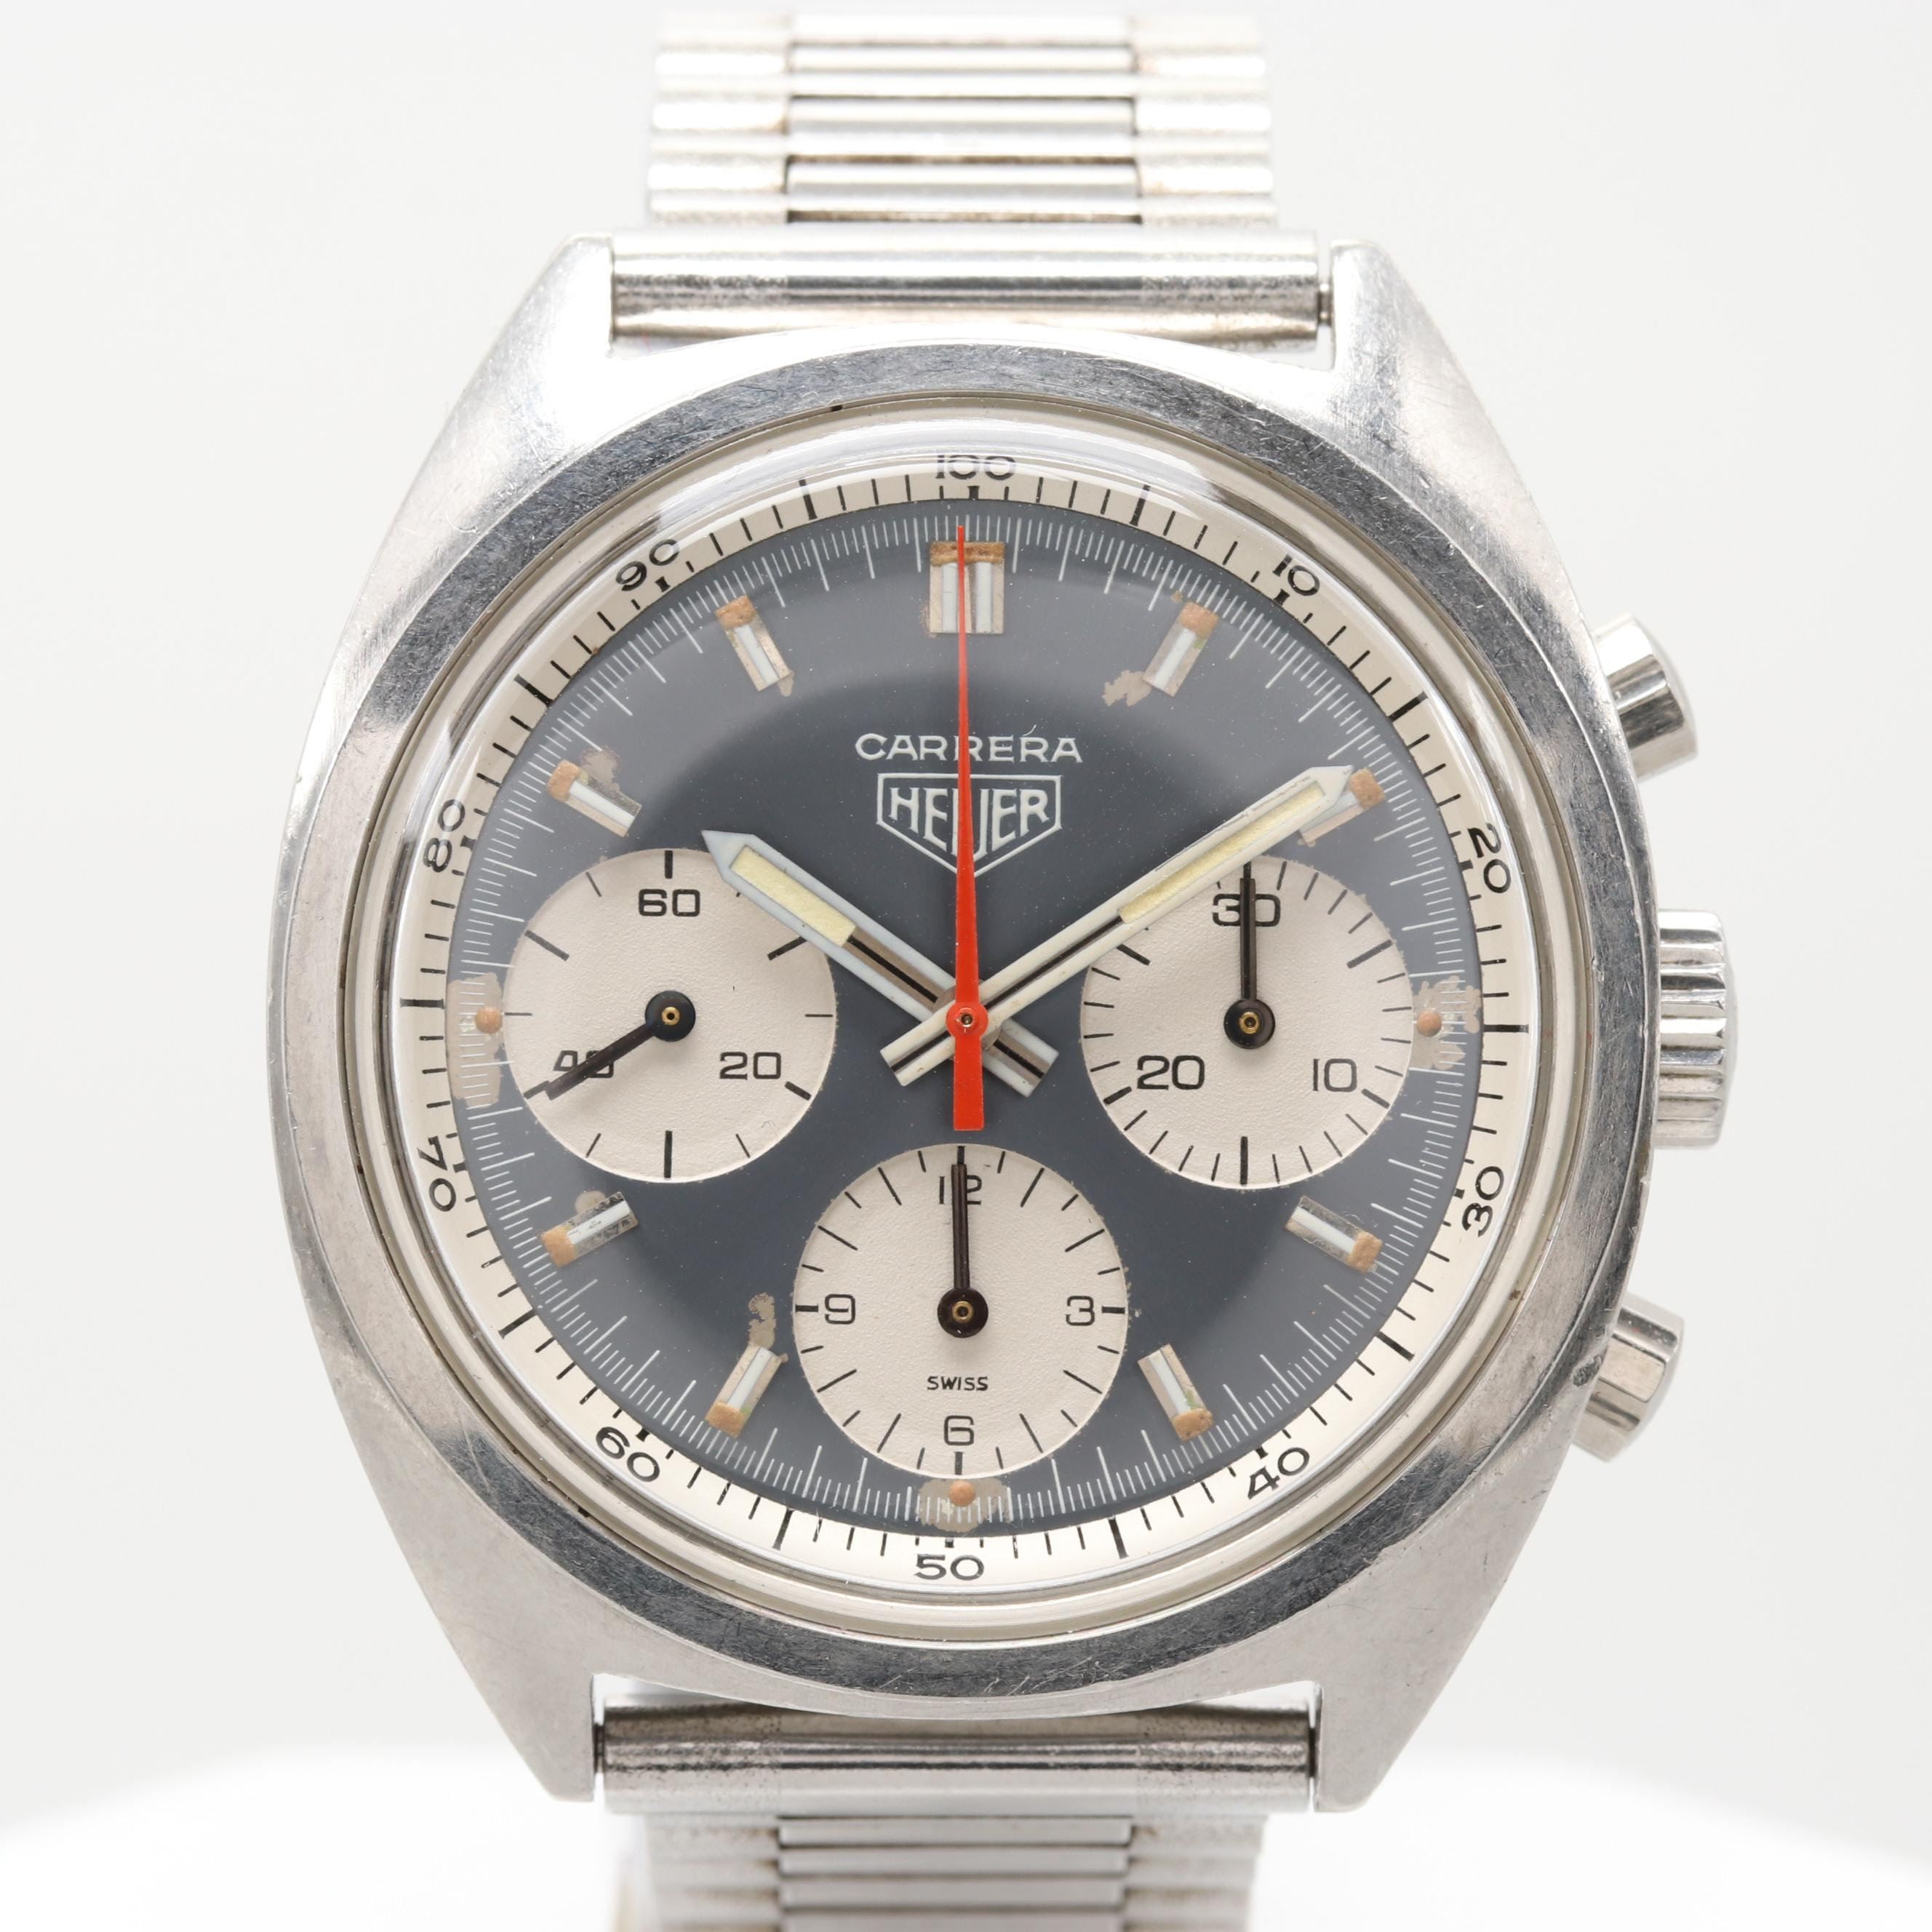 Vintage Heuer Carrera Stem Wind Chronograph Wristwatch